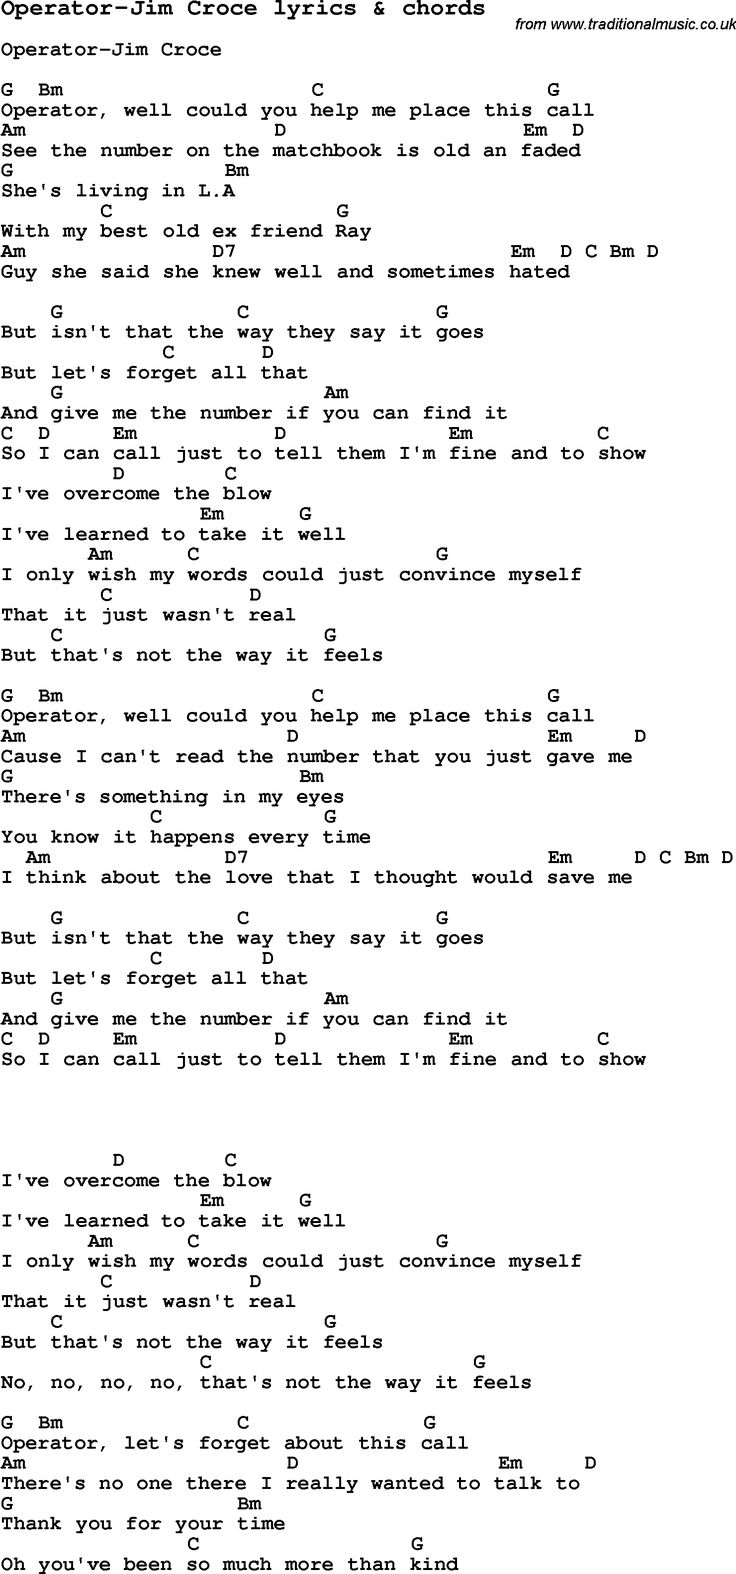 106 best song lyrics images on pinterest music classical love song lyrics for operator jim croce with chords for ukulele guitar banjo hexwebz Images